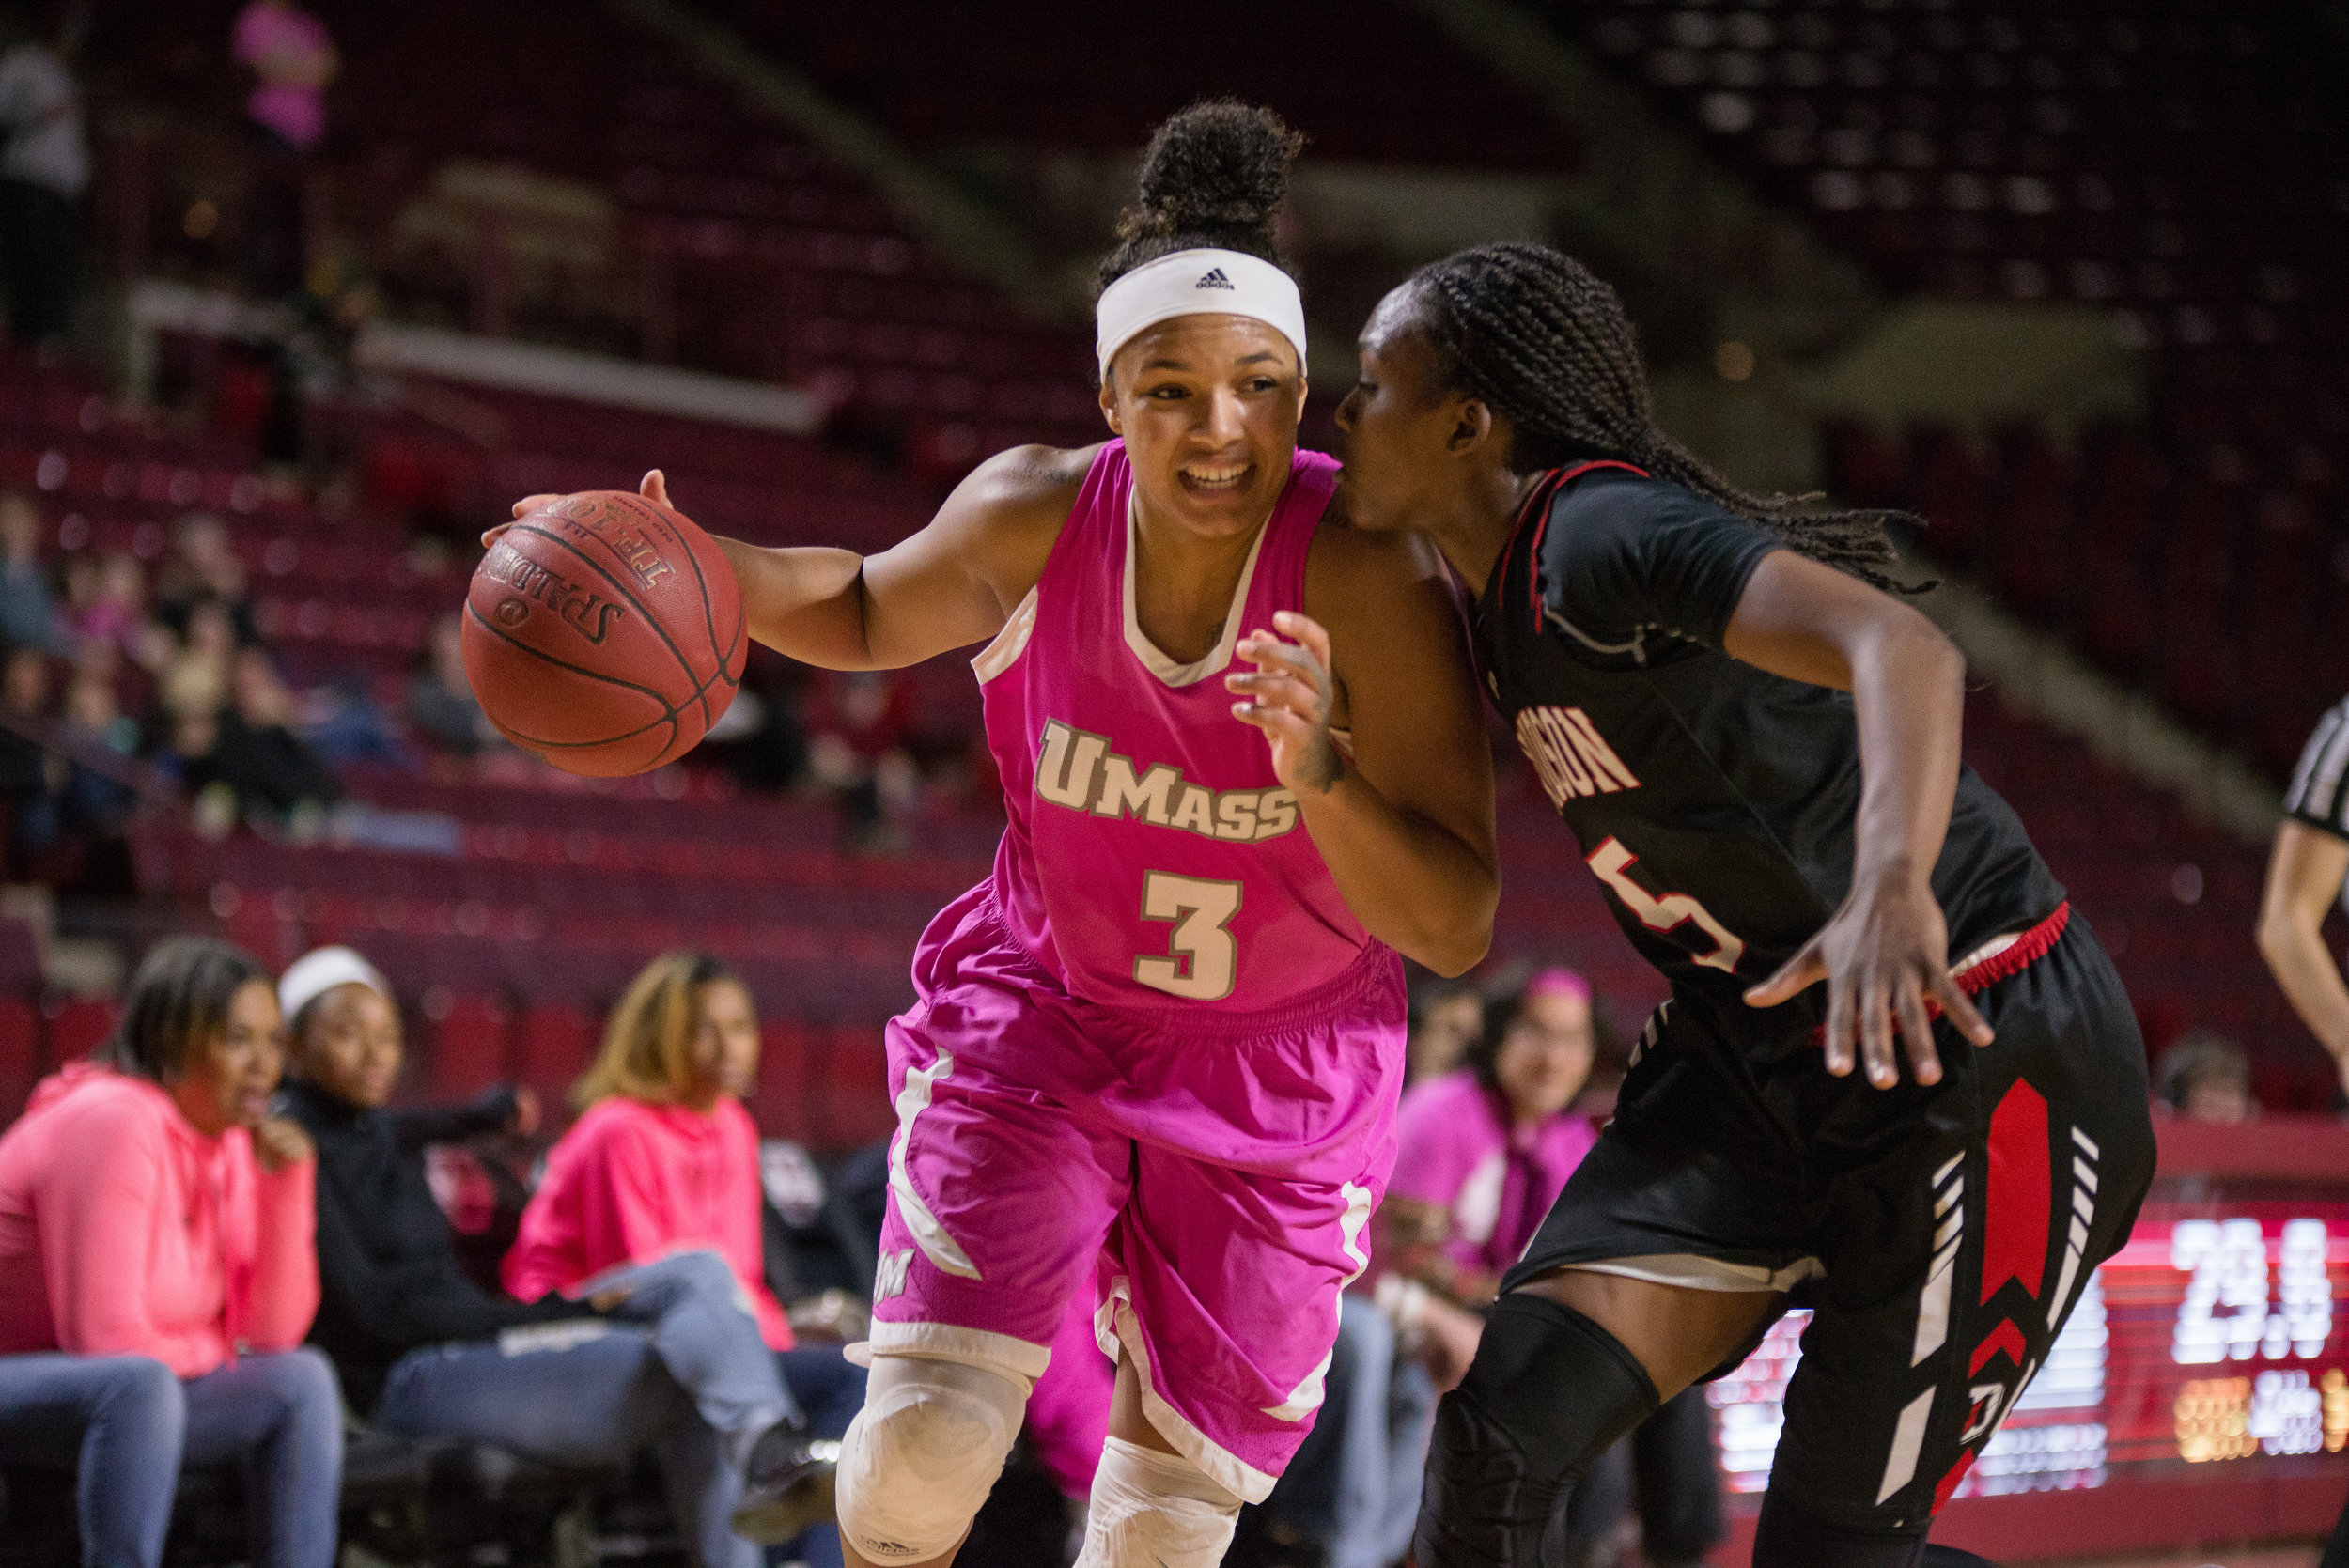 UMass Women's Basketball lost to Davidson 59-63 at the Mullins Center on Saturday, Feb. 4, 2017. Photo by Judith Gibson-Okunieff